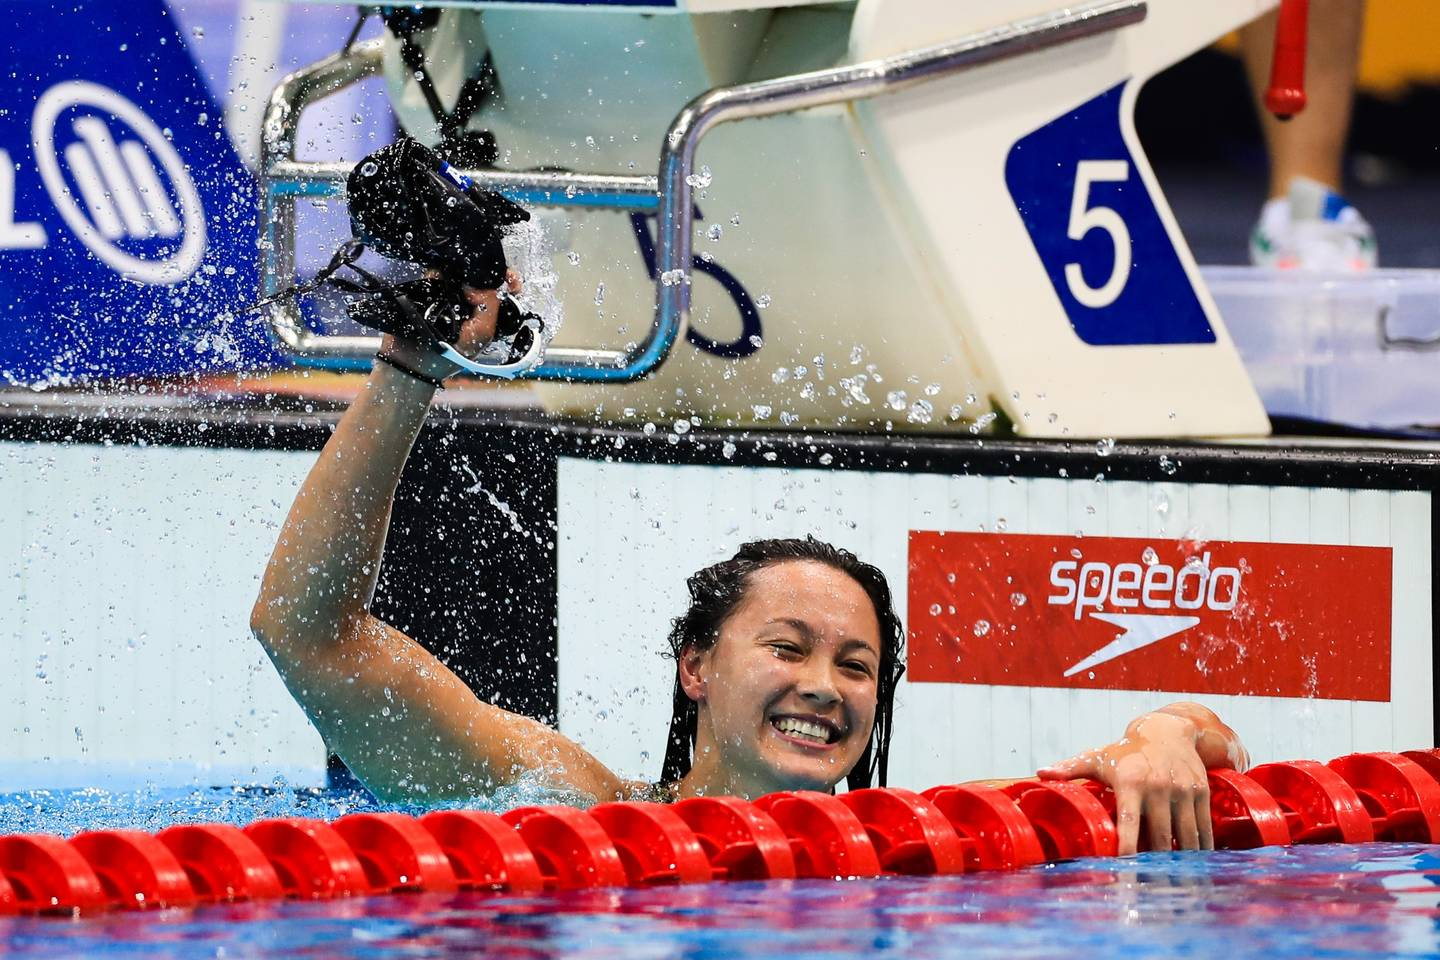 Alice Tai celebrating after winning race in swimming pool